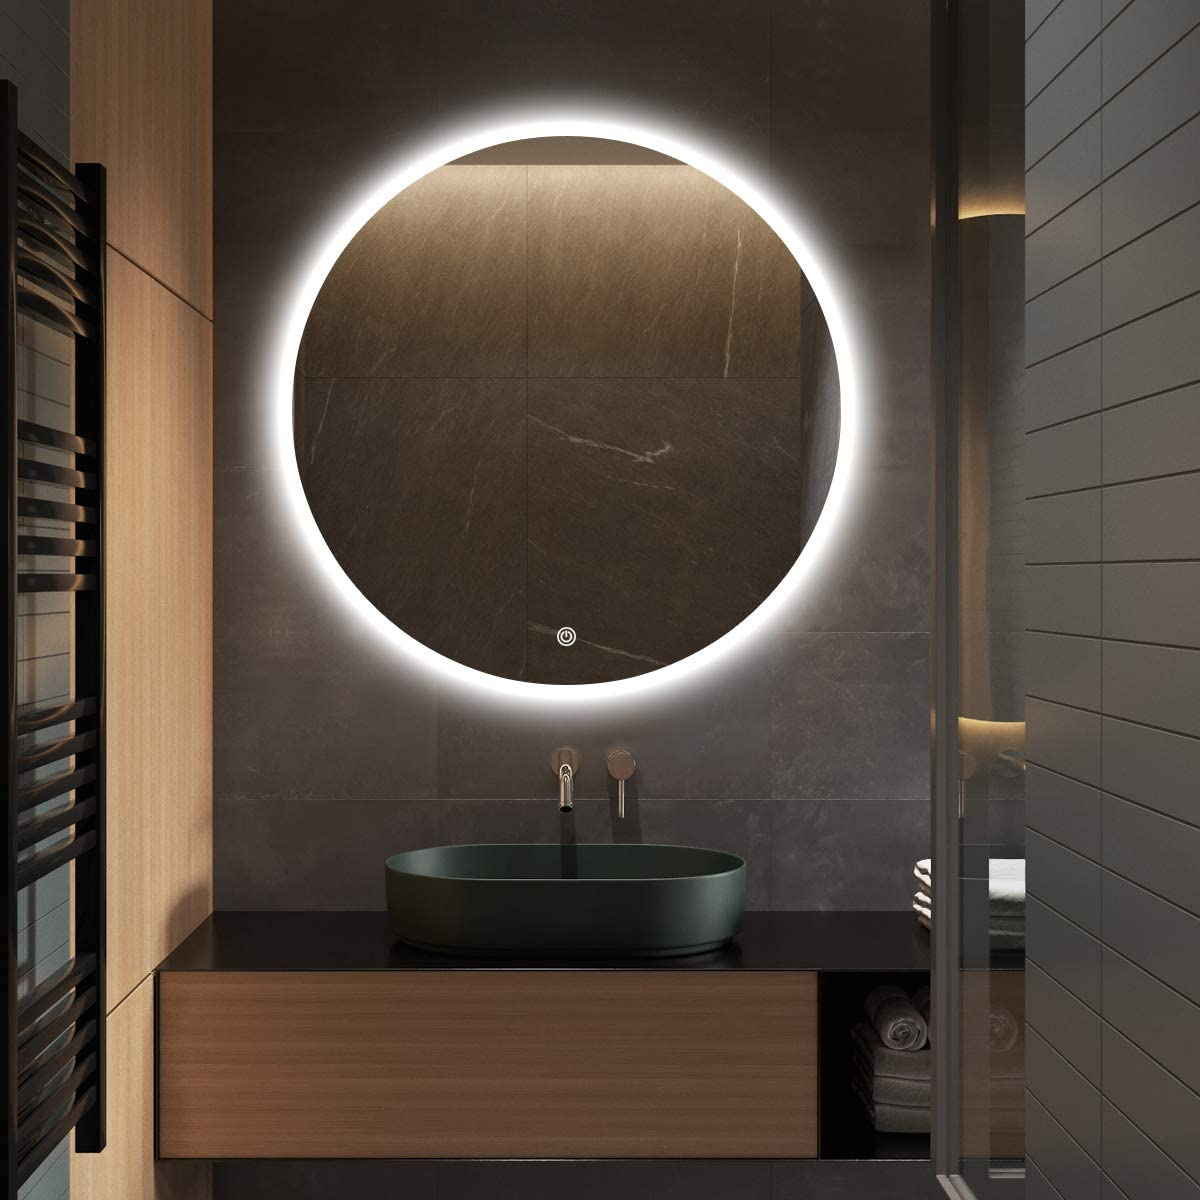 S bagno 32 Inch Diameter Modern Round Illuminated LED Bathroom Mirror, with Built-in Bluetooth Speaker, Dimming Function, Demister pad and Touch Sensor Switch